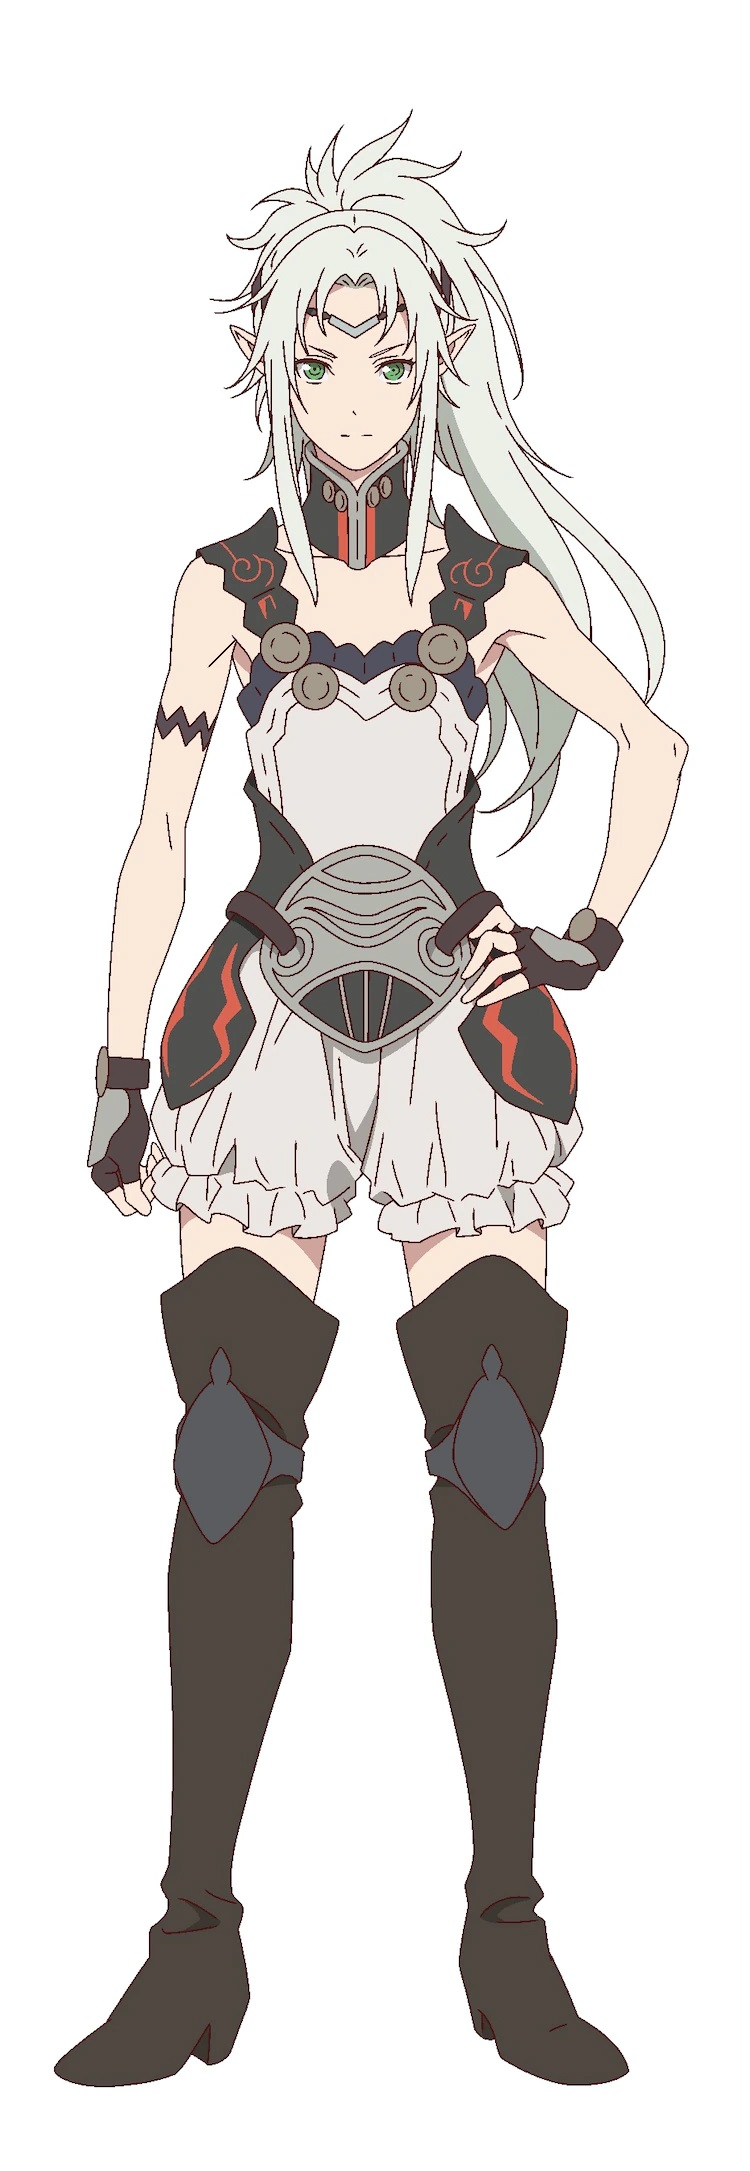 A character setting of Menel, a half-elf ranger from the upcoming The Faraway Paladin TV anime. Menel is slim and androgynous in appearance. The have green eyes and silver hair and they are dressed in a tunic and pantaloons with thigh high leather boots.